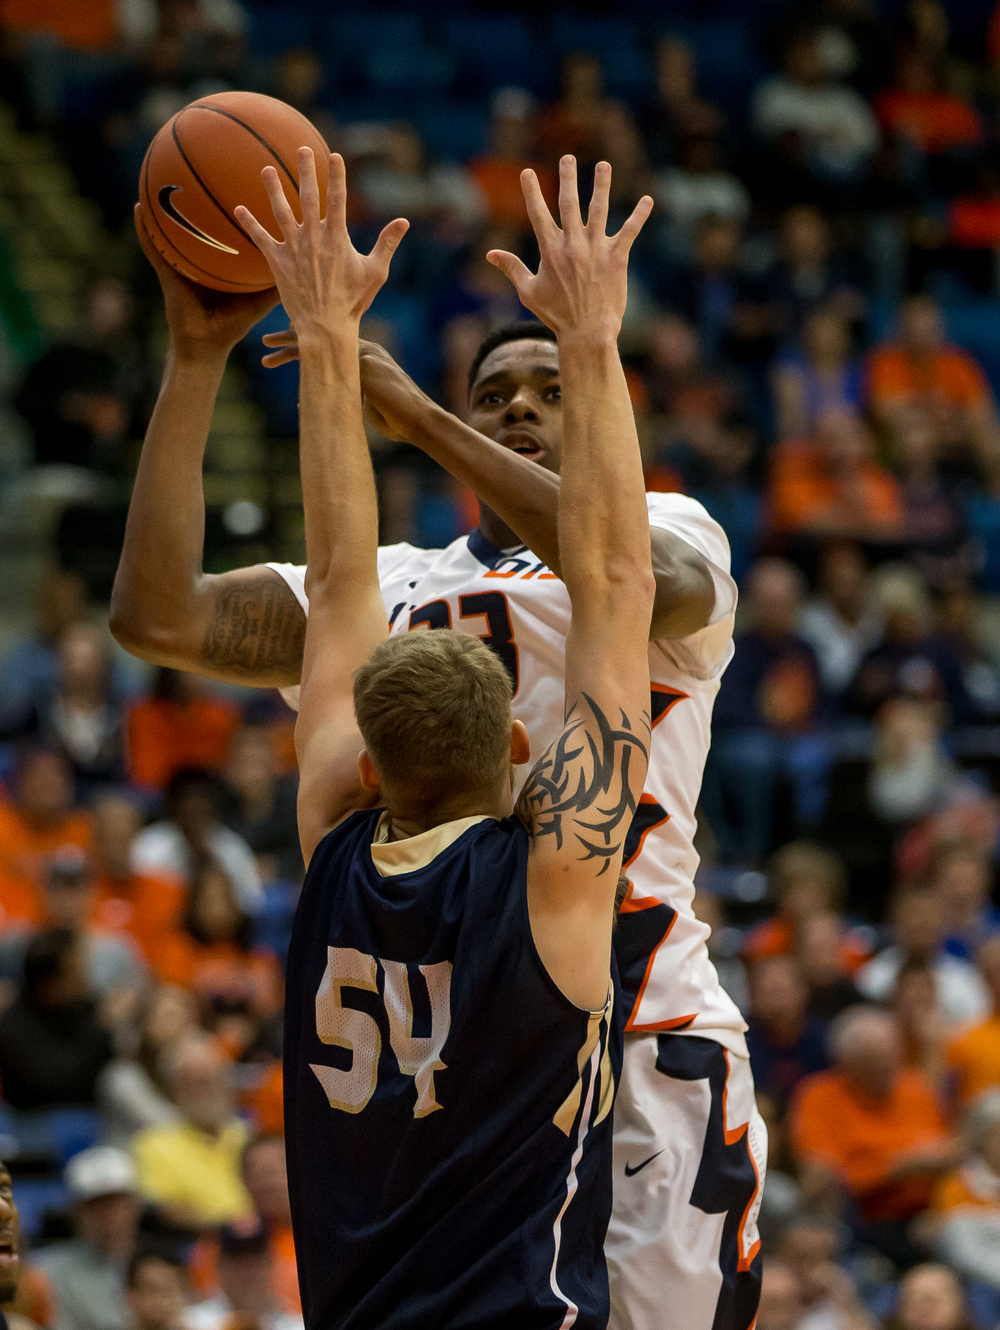 University of Illinois' Mike Thorne Jr. (33) puts up a shot against University of Illinois Springfield's Jesse Tesmer (54) in the first half during an exhibition game at the Prairie Capital Convention Center, Sunday, Nov. 8, 2015, in Springfield, Ill. Justin L. Fowler/The State Journal-Register